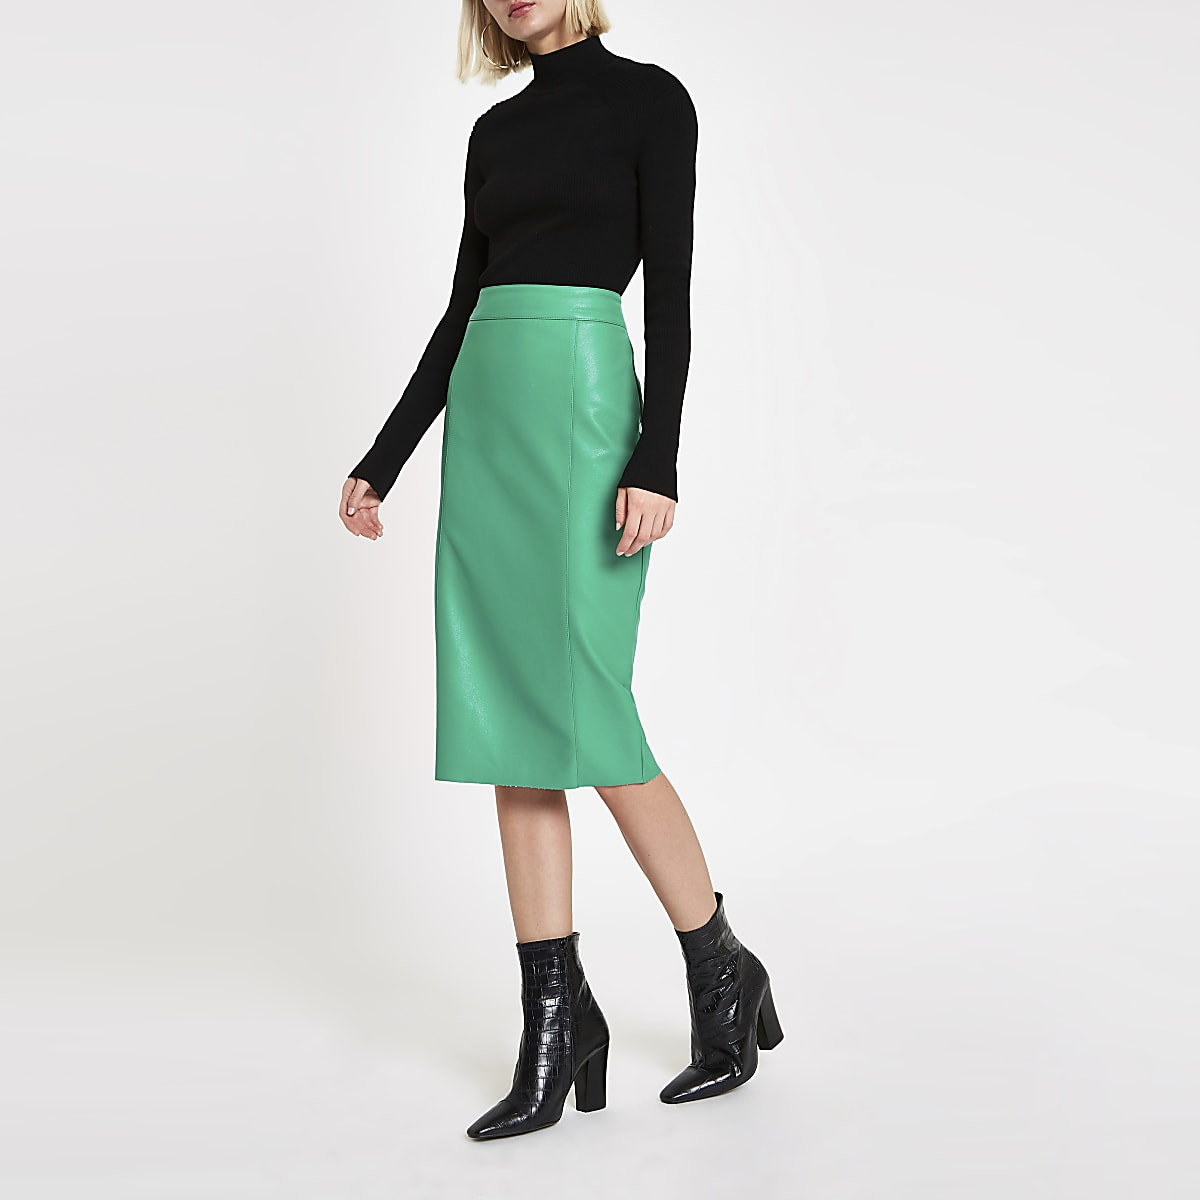 Bright green faux leather pencil skirt